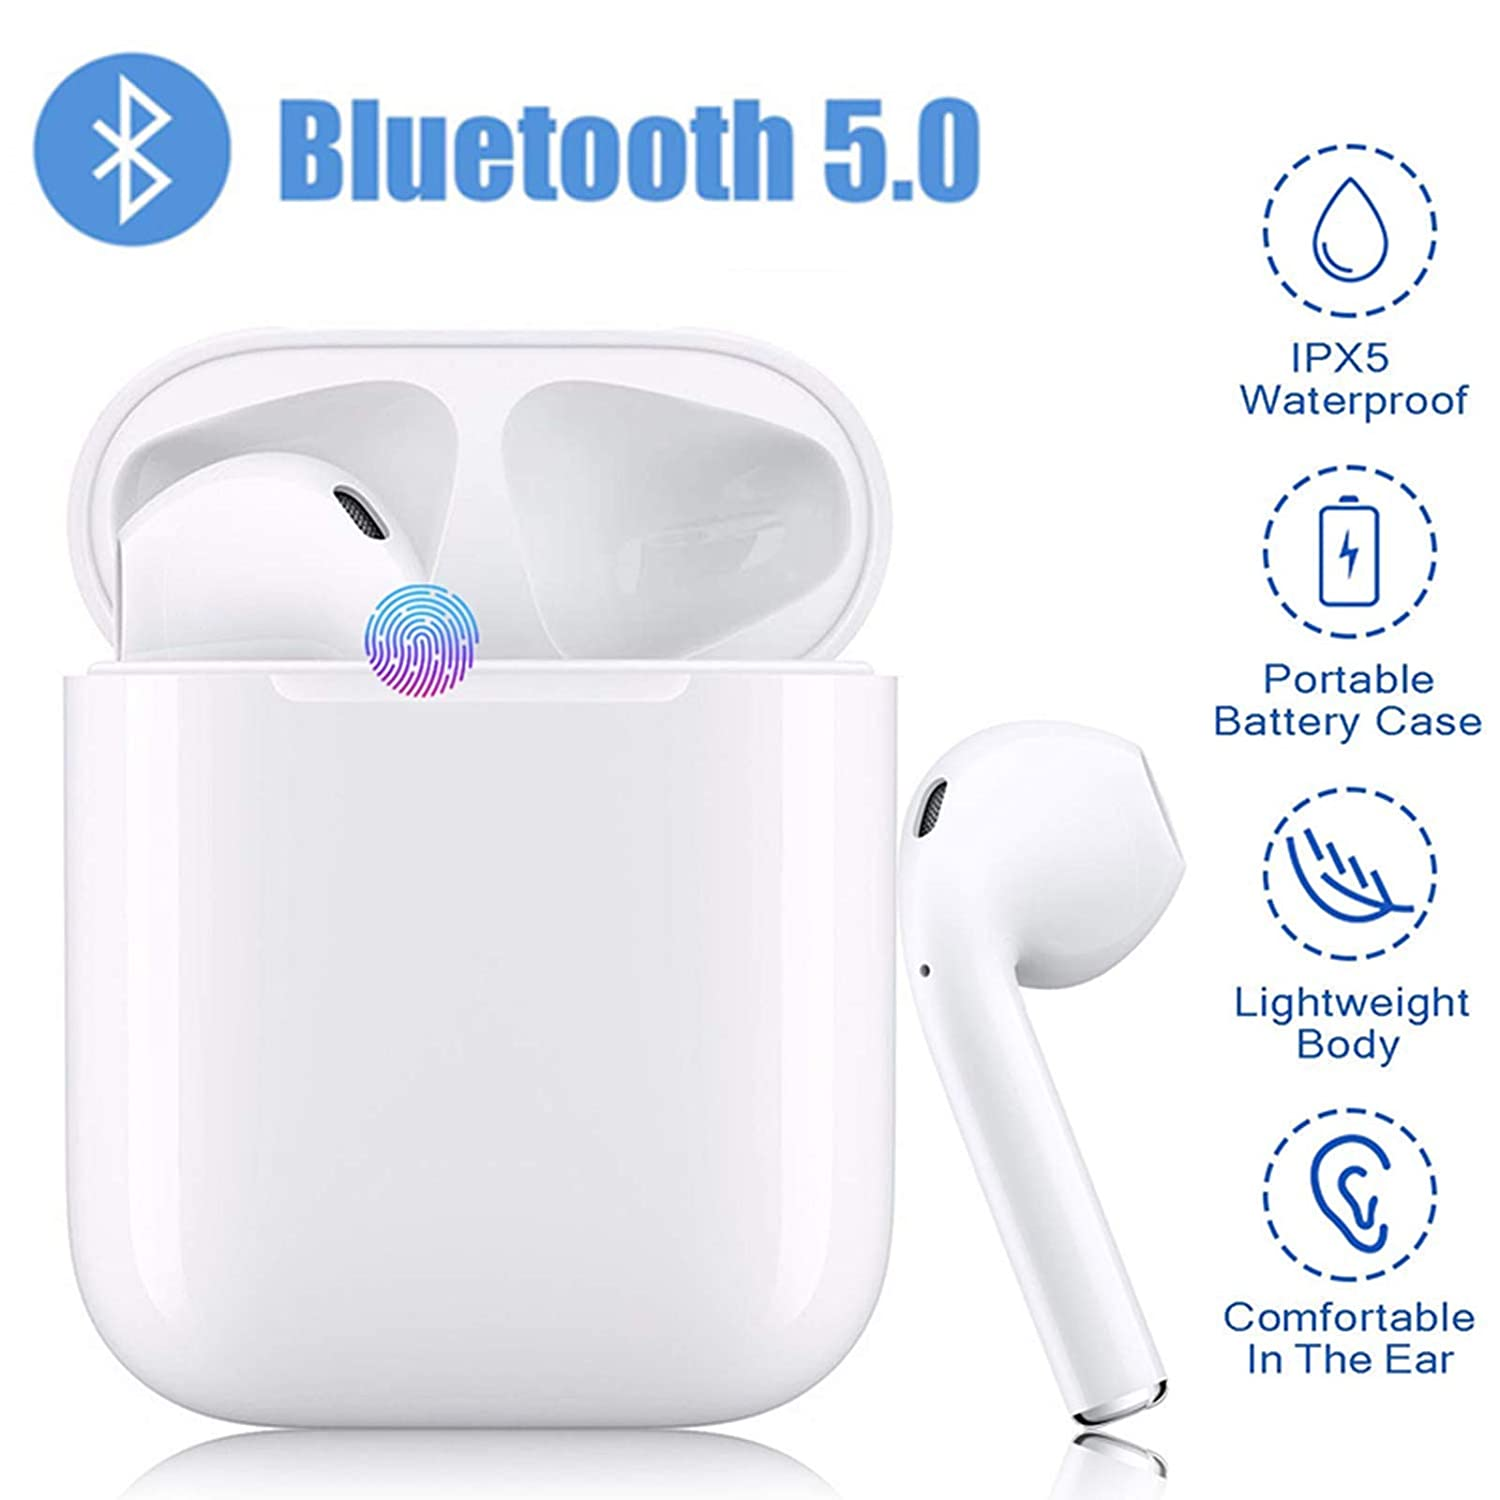 Bluetooth Headphones Wireless Earbuds Stereo Bass Wireless Headphones,Support Fast Charging 24 Hrs Charging Case Pop-ups Auto Pairing,IPX5,Resistant for iPhone Apple Airpods Samsung Android